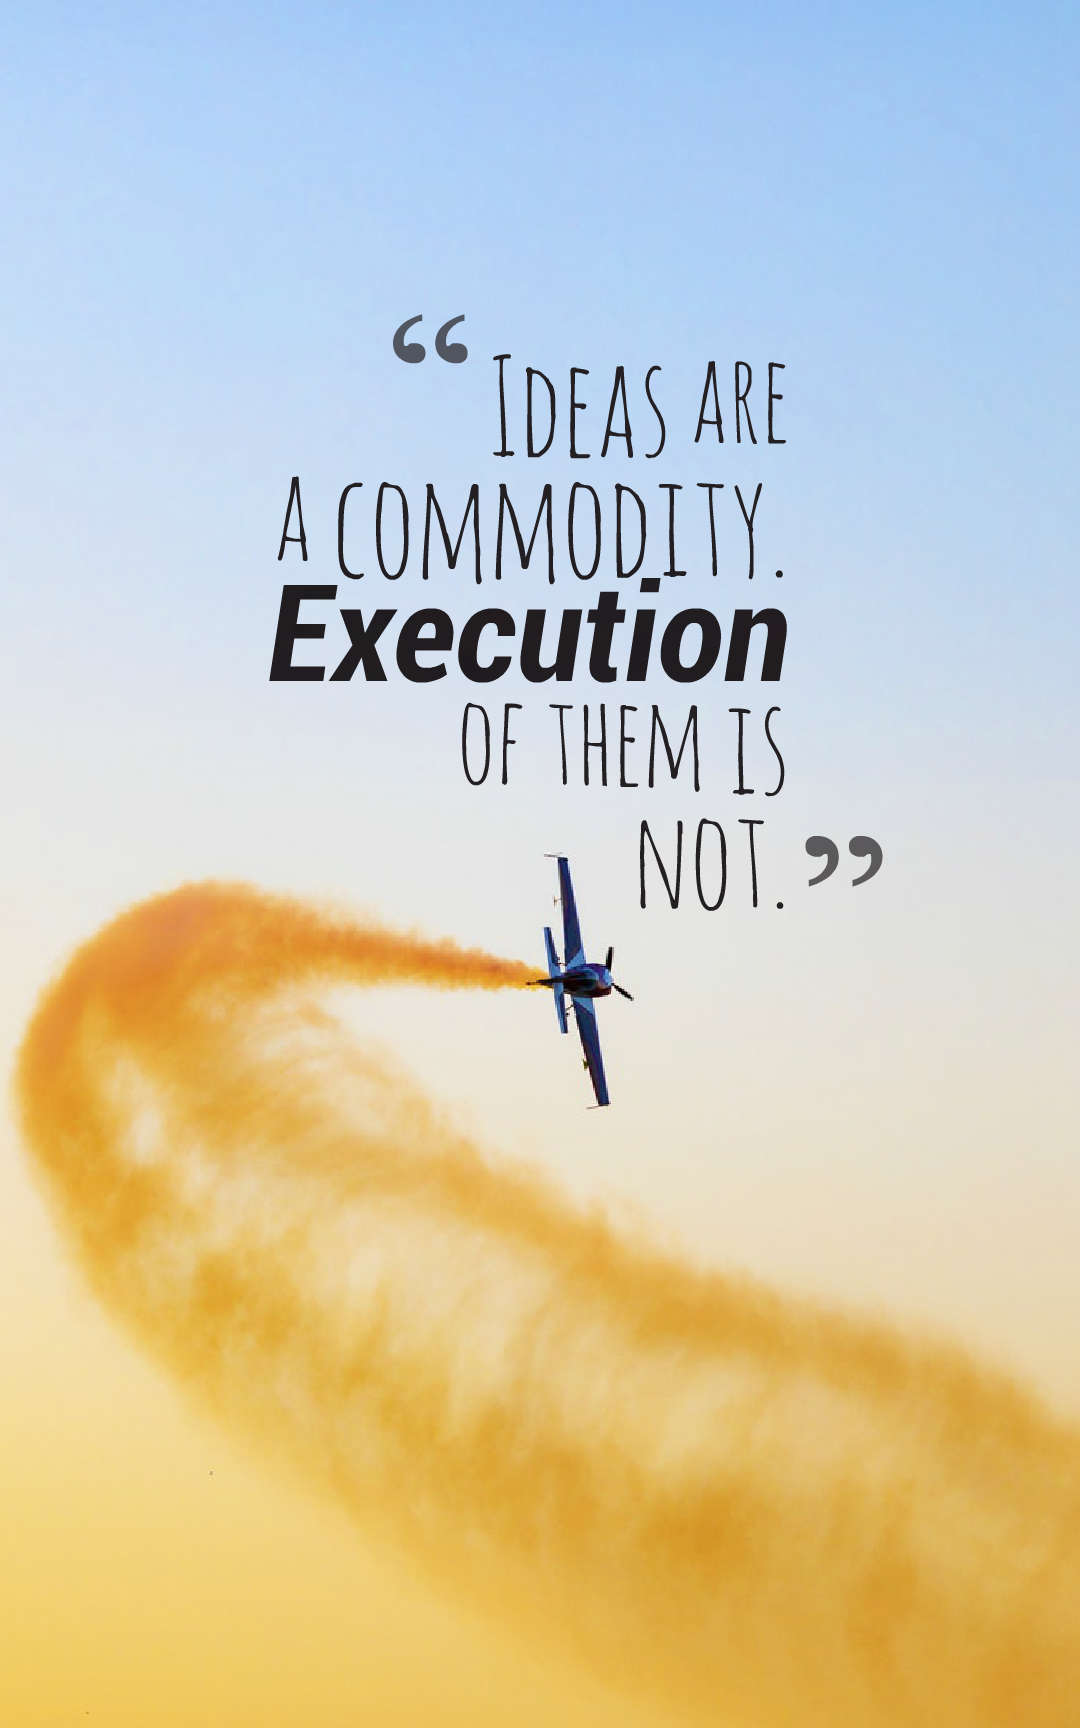 Quotes image of Ideas are a commodity. Execution of them is not.